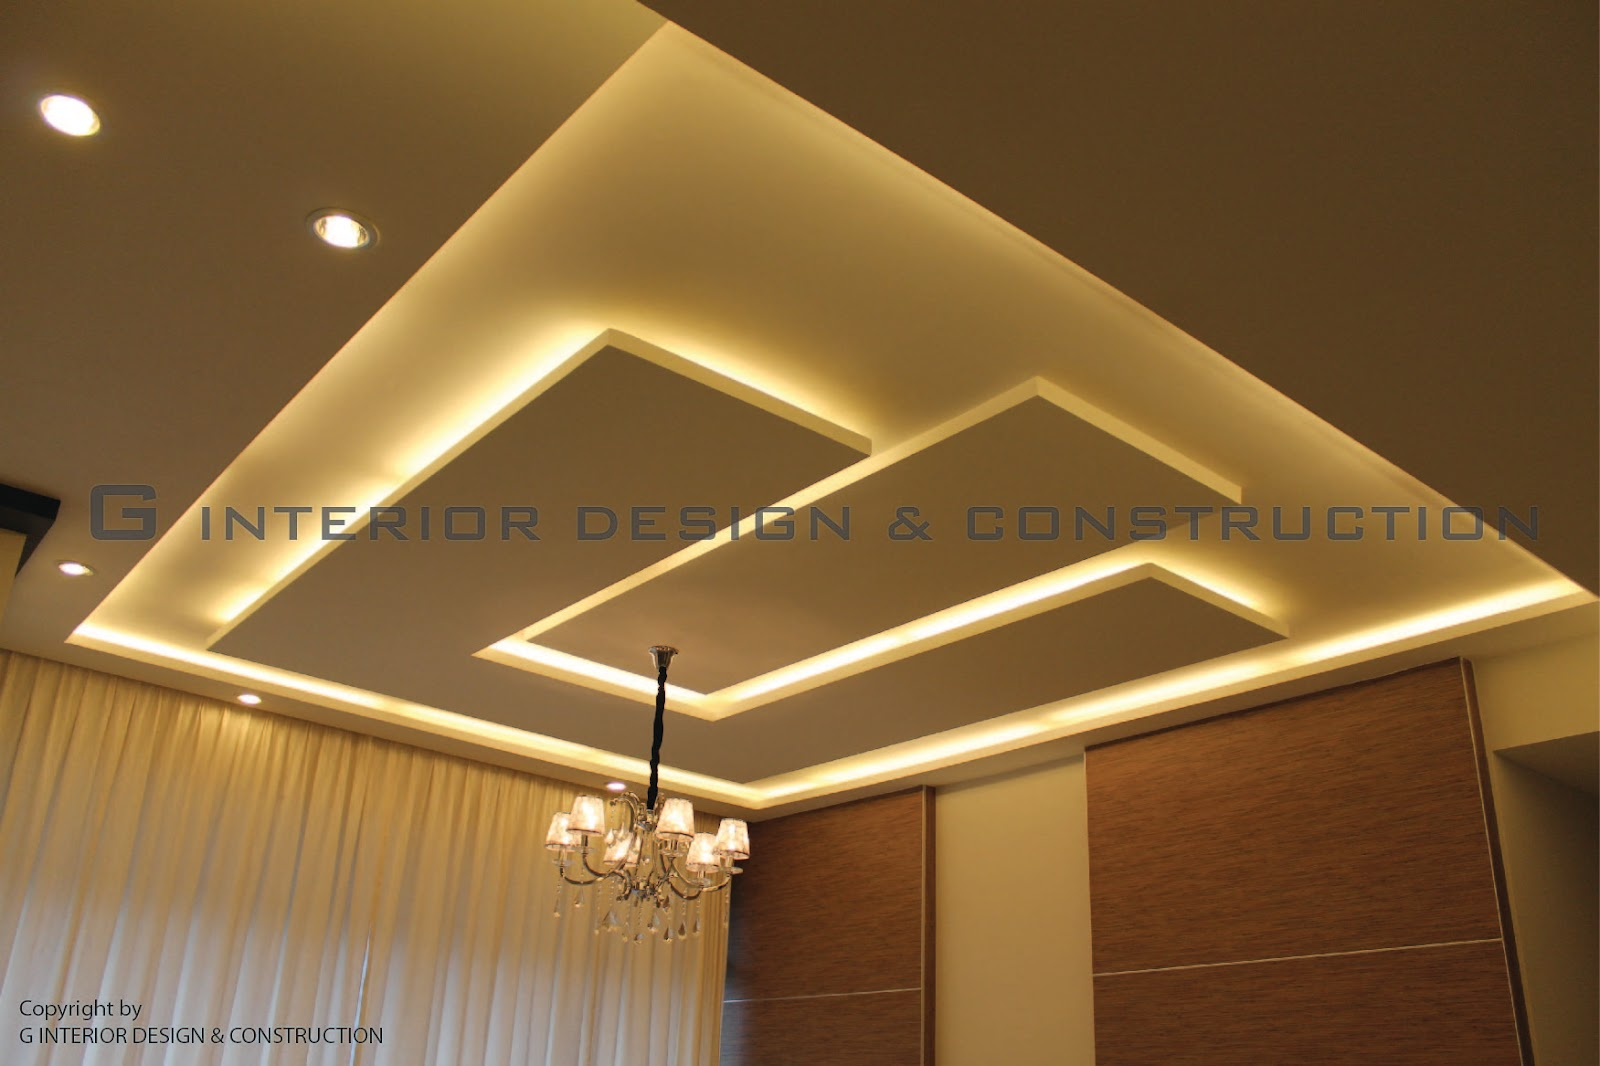 Http G Interiordesignrenovation Blogspot Com 2011 08 Plaster Ceiling Project Html